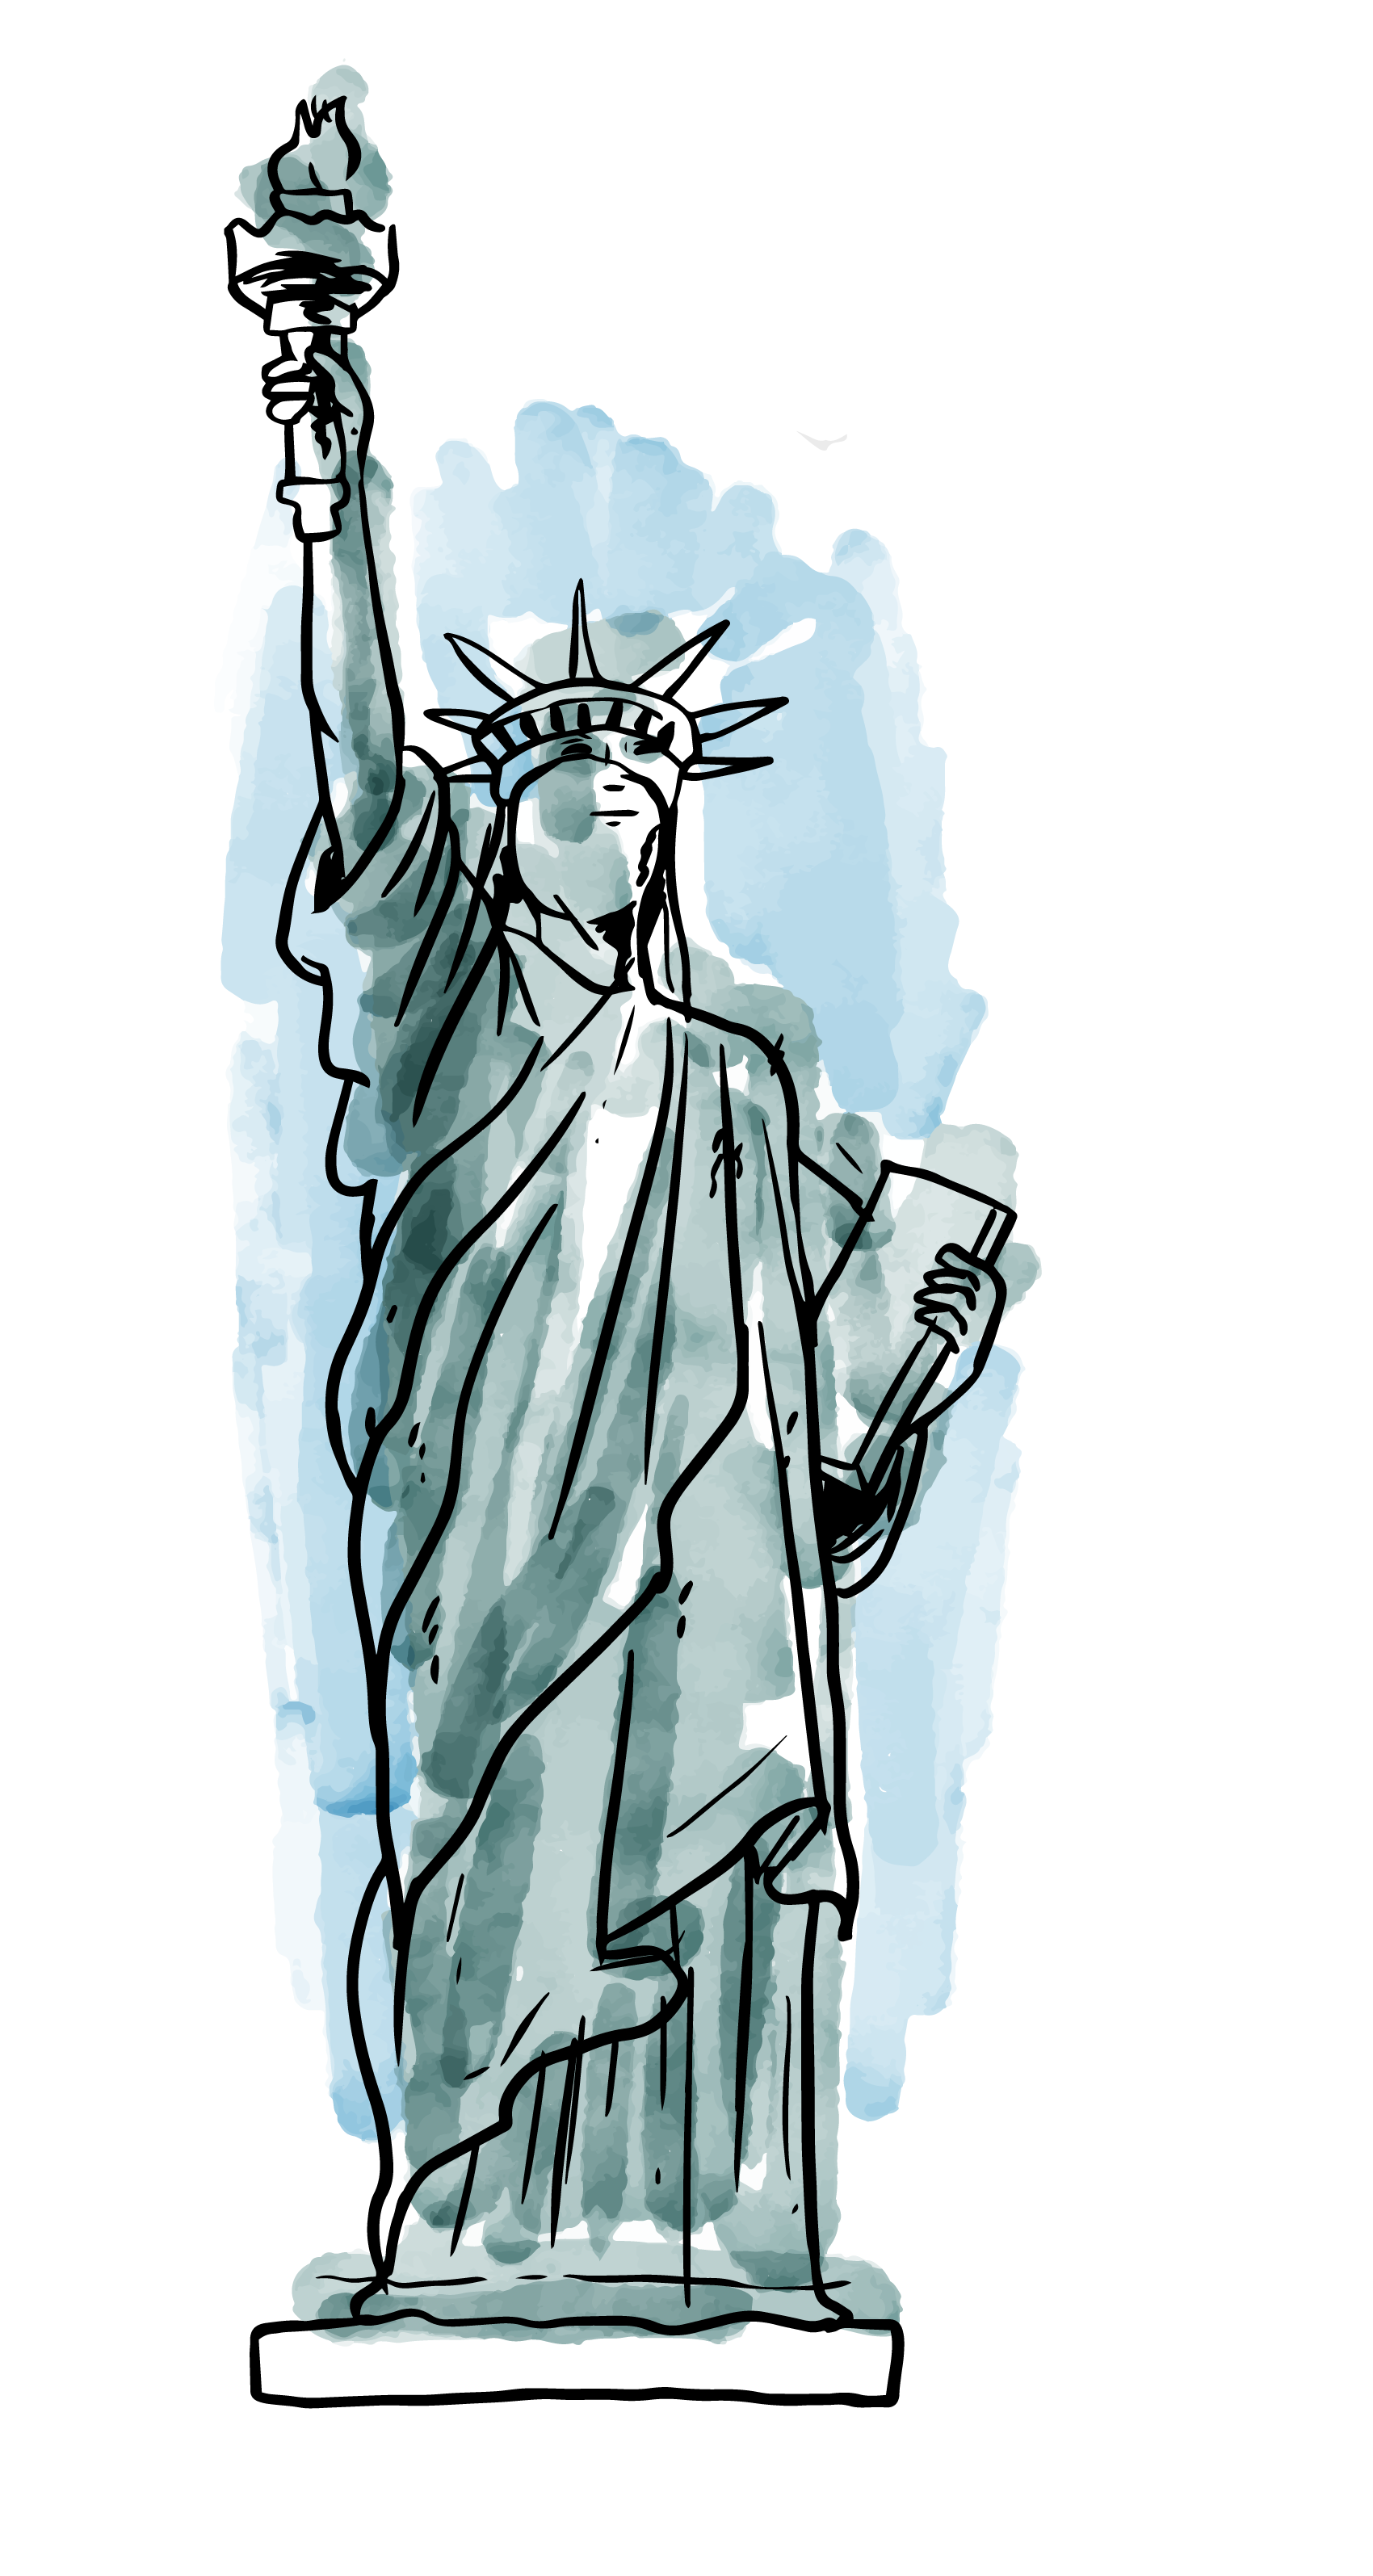 vector free download Statue of Liberty